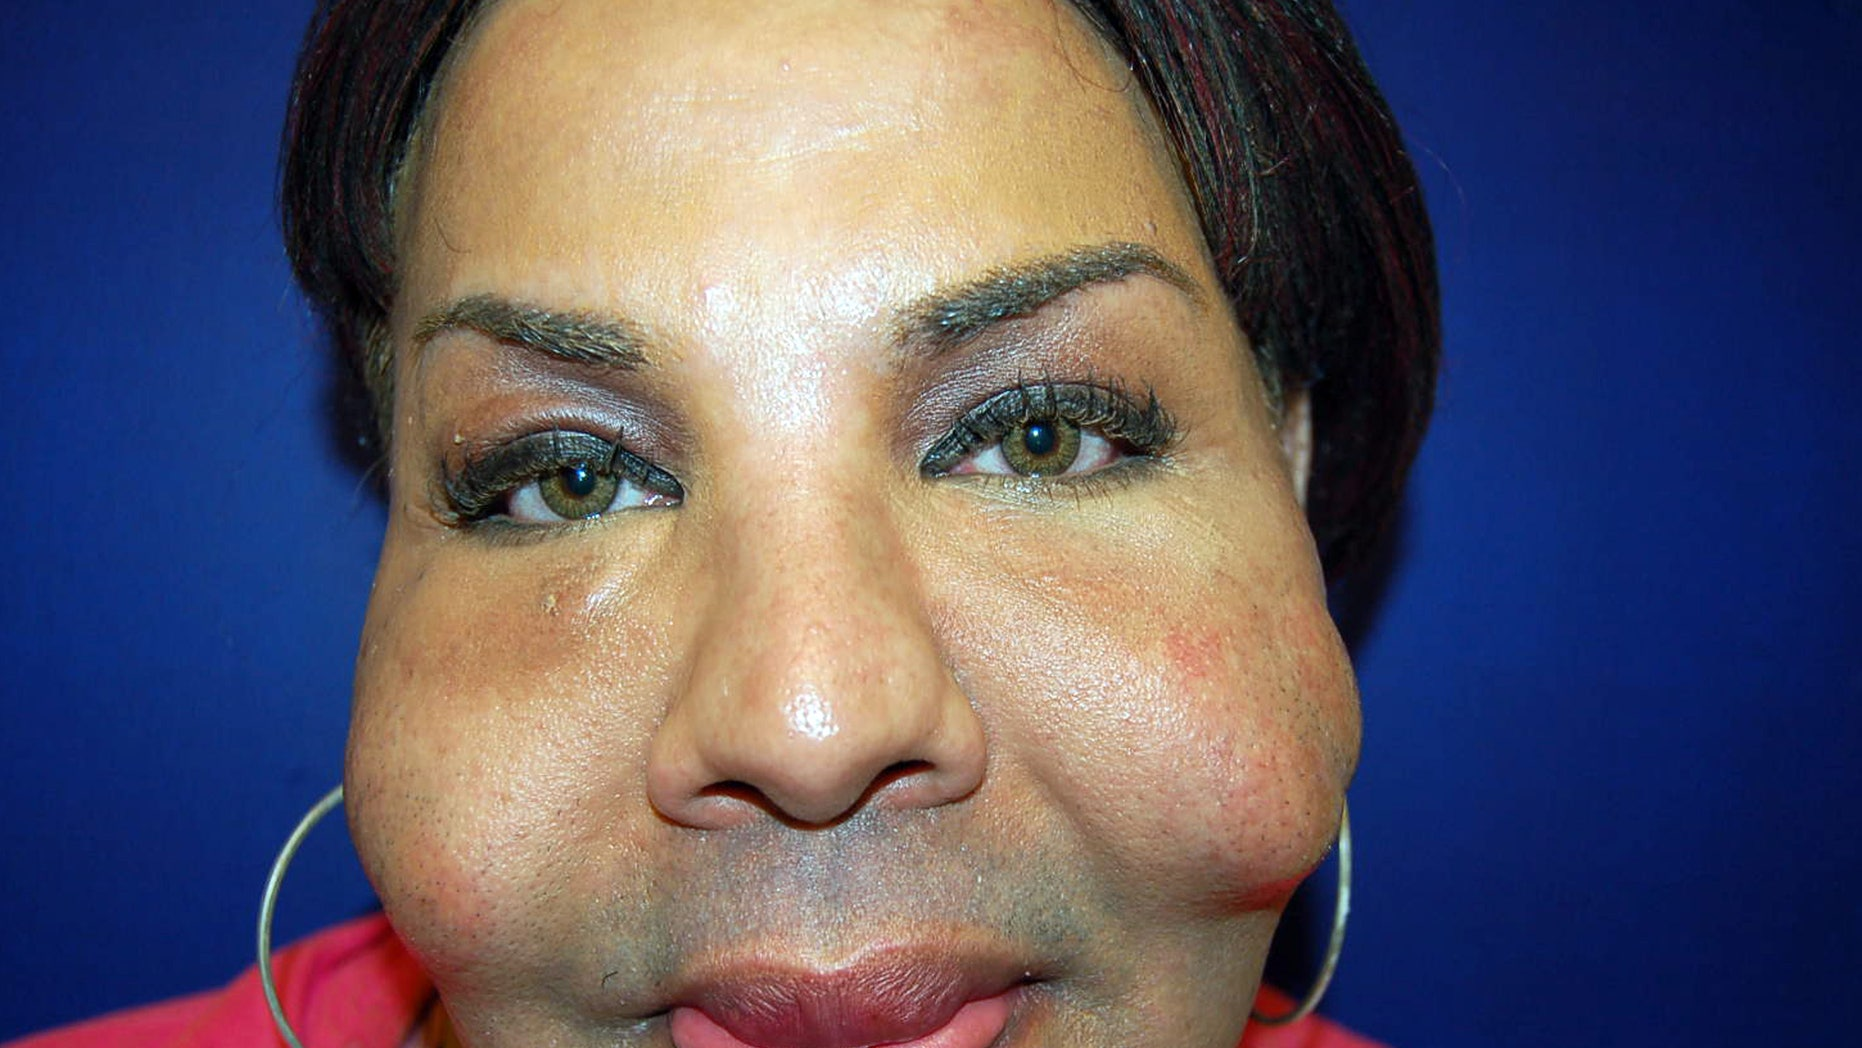 This photograph shows the damage illicit cosmetic procedures can cause recipients such as Rajindra Narinesinch, a patient whose face shows nodules from previous illicit procedures.